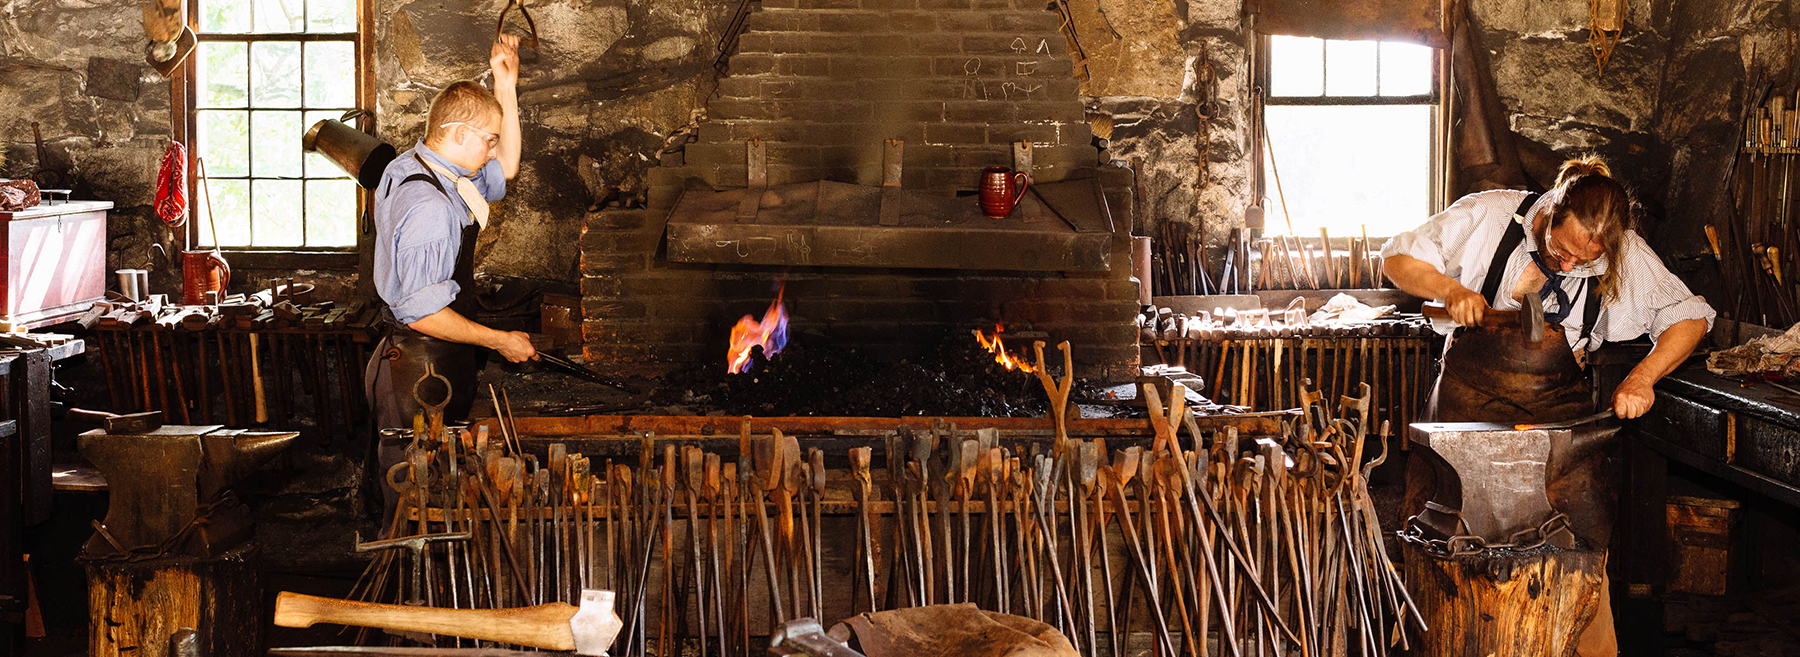 Blacksmiths working at Old Sturbridge Village